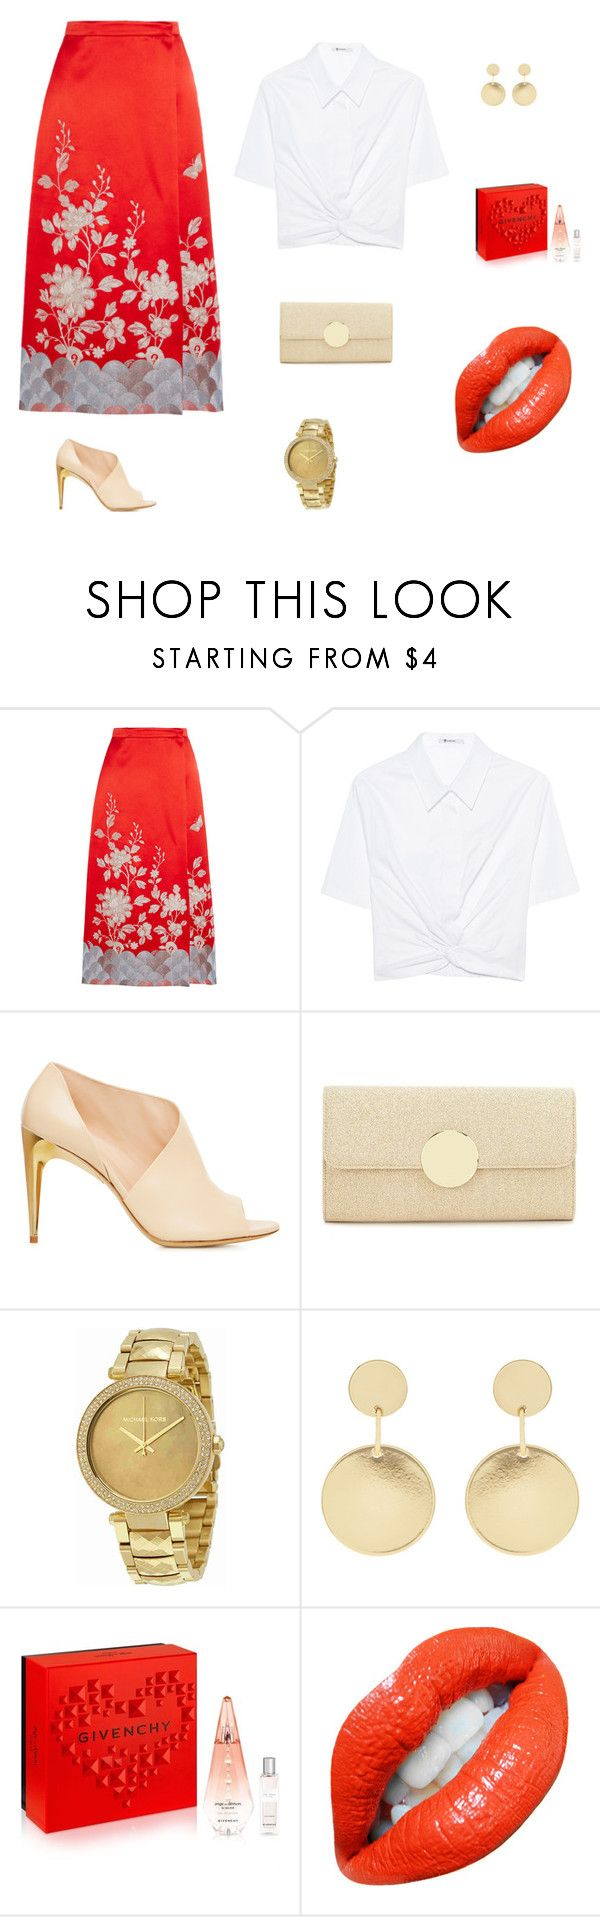 """арт директор"" by tukueva-zaira on Polyvore featuring мода, Gucci, T By Alexander Wang, Kate Landry, Michael Kors, Accessorize и Givenchy"